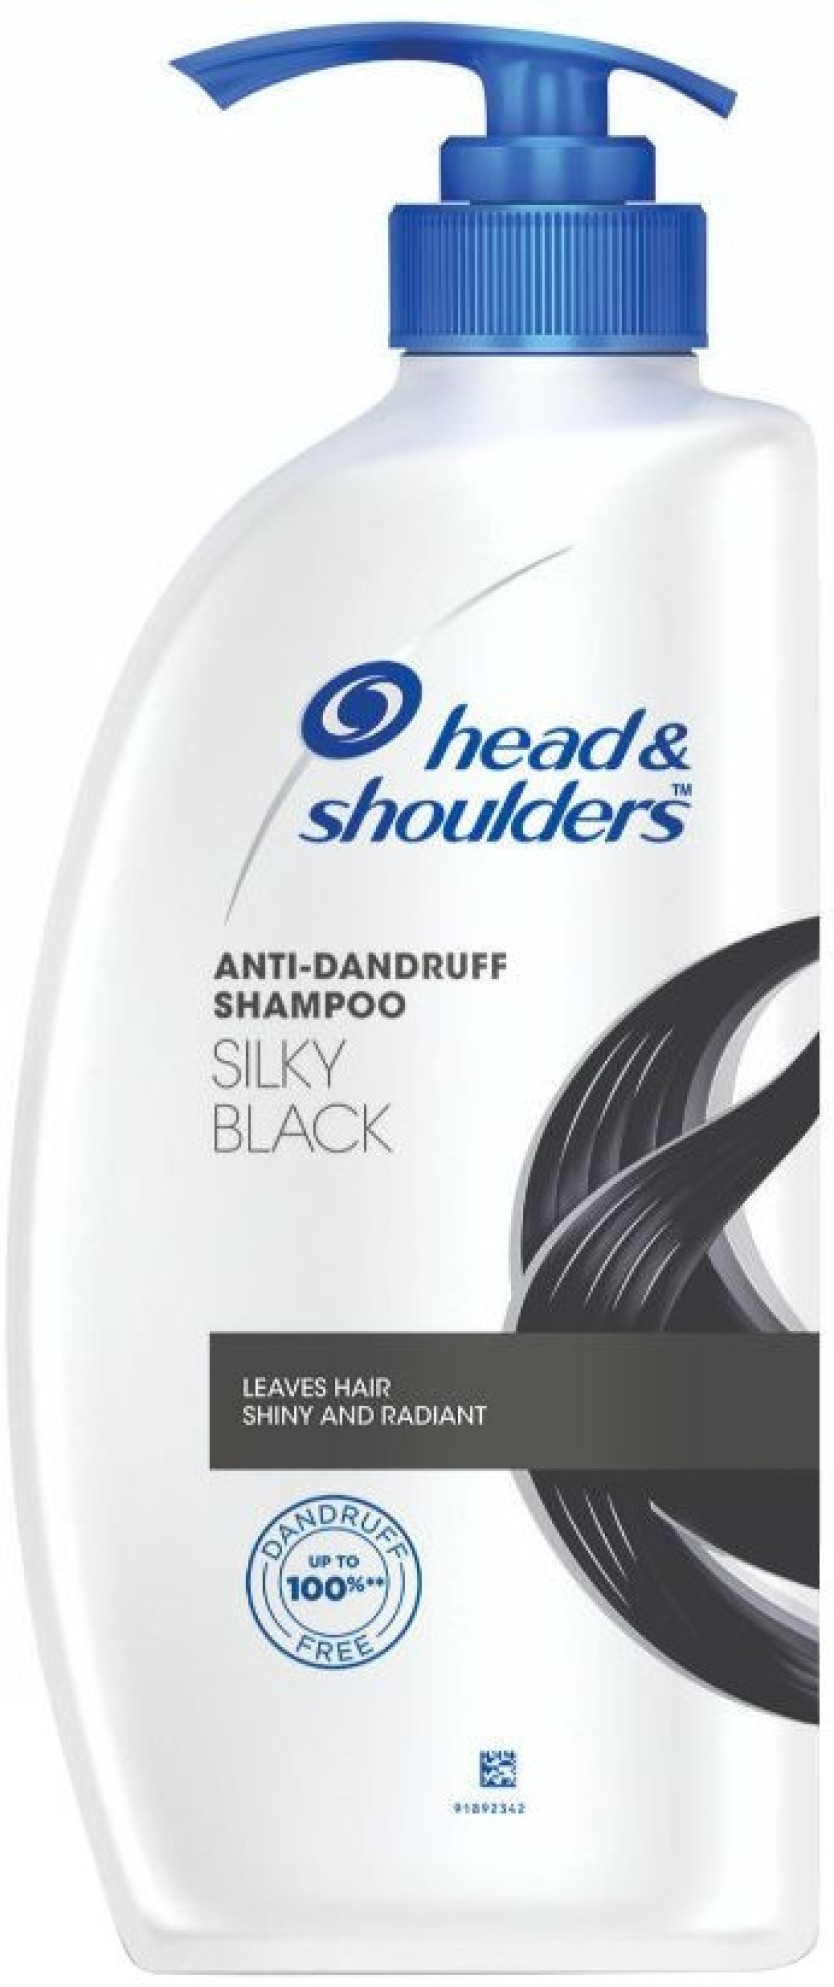 50-53% Off On Dove and Head & Shoulder Shampoo